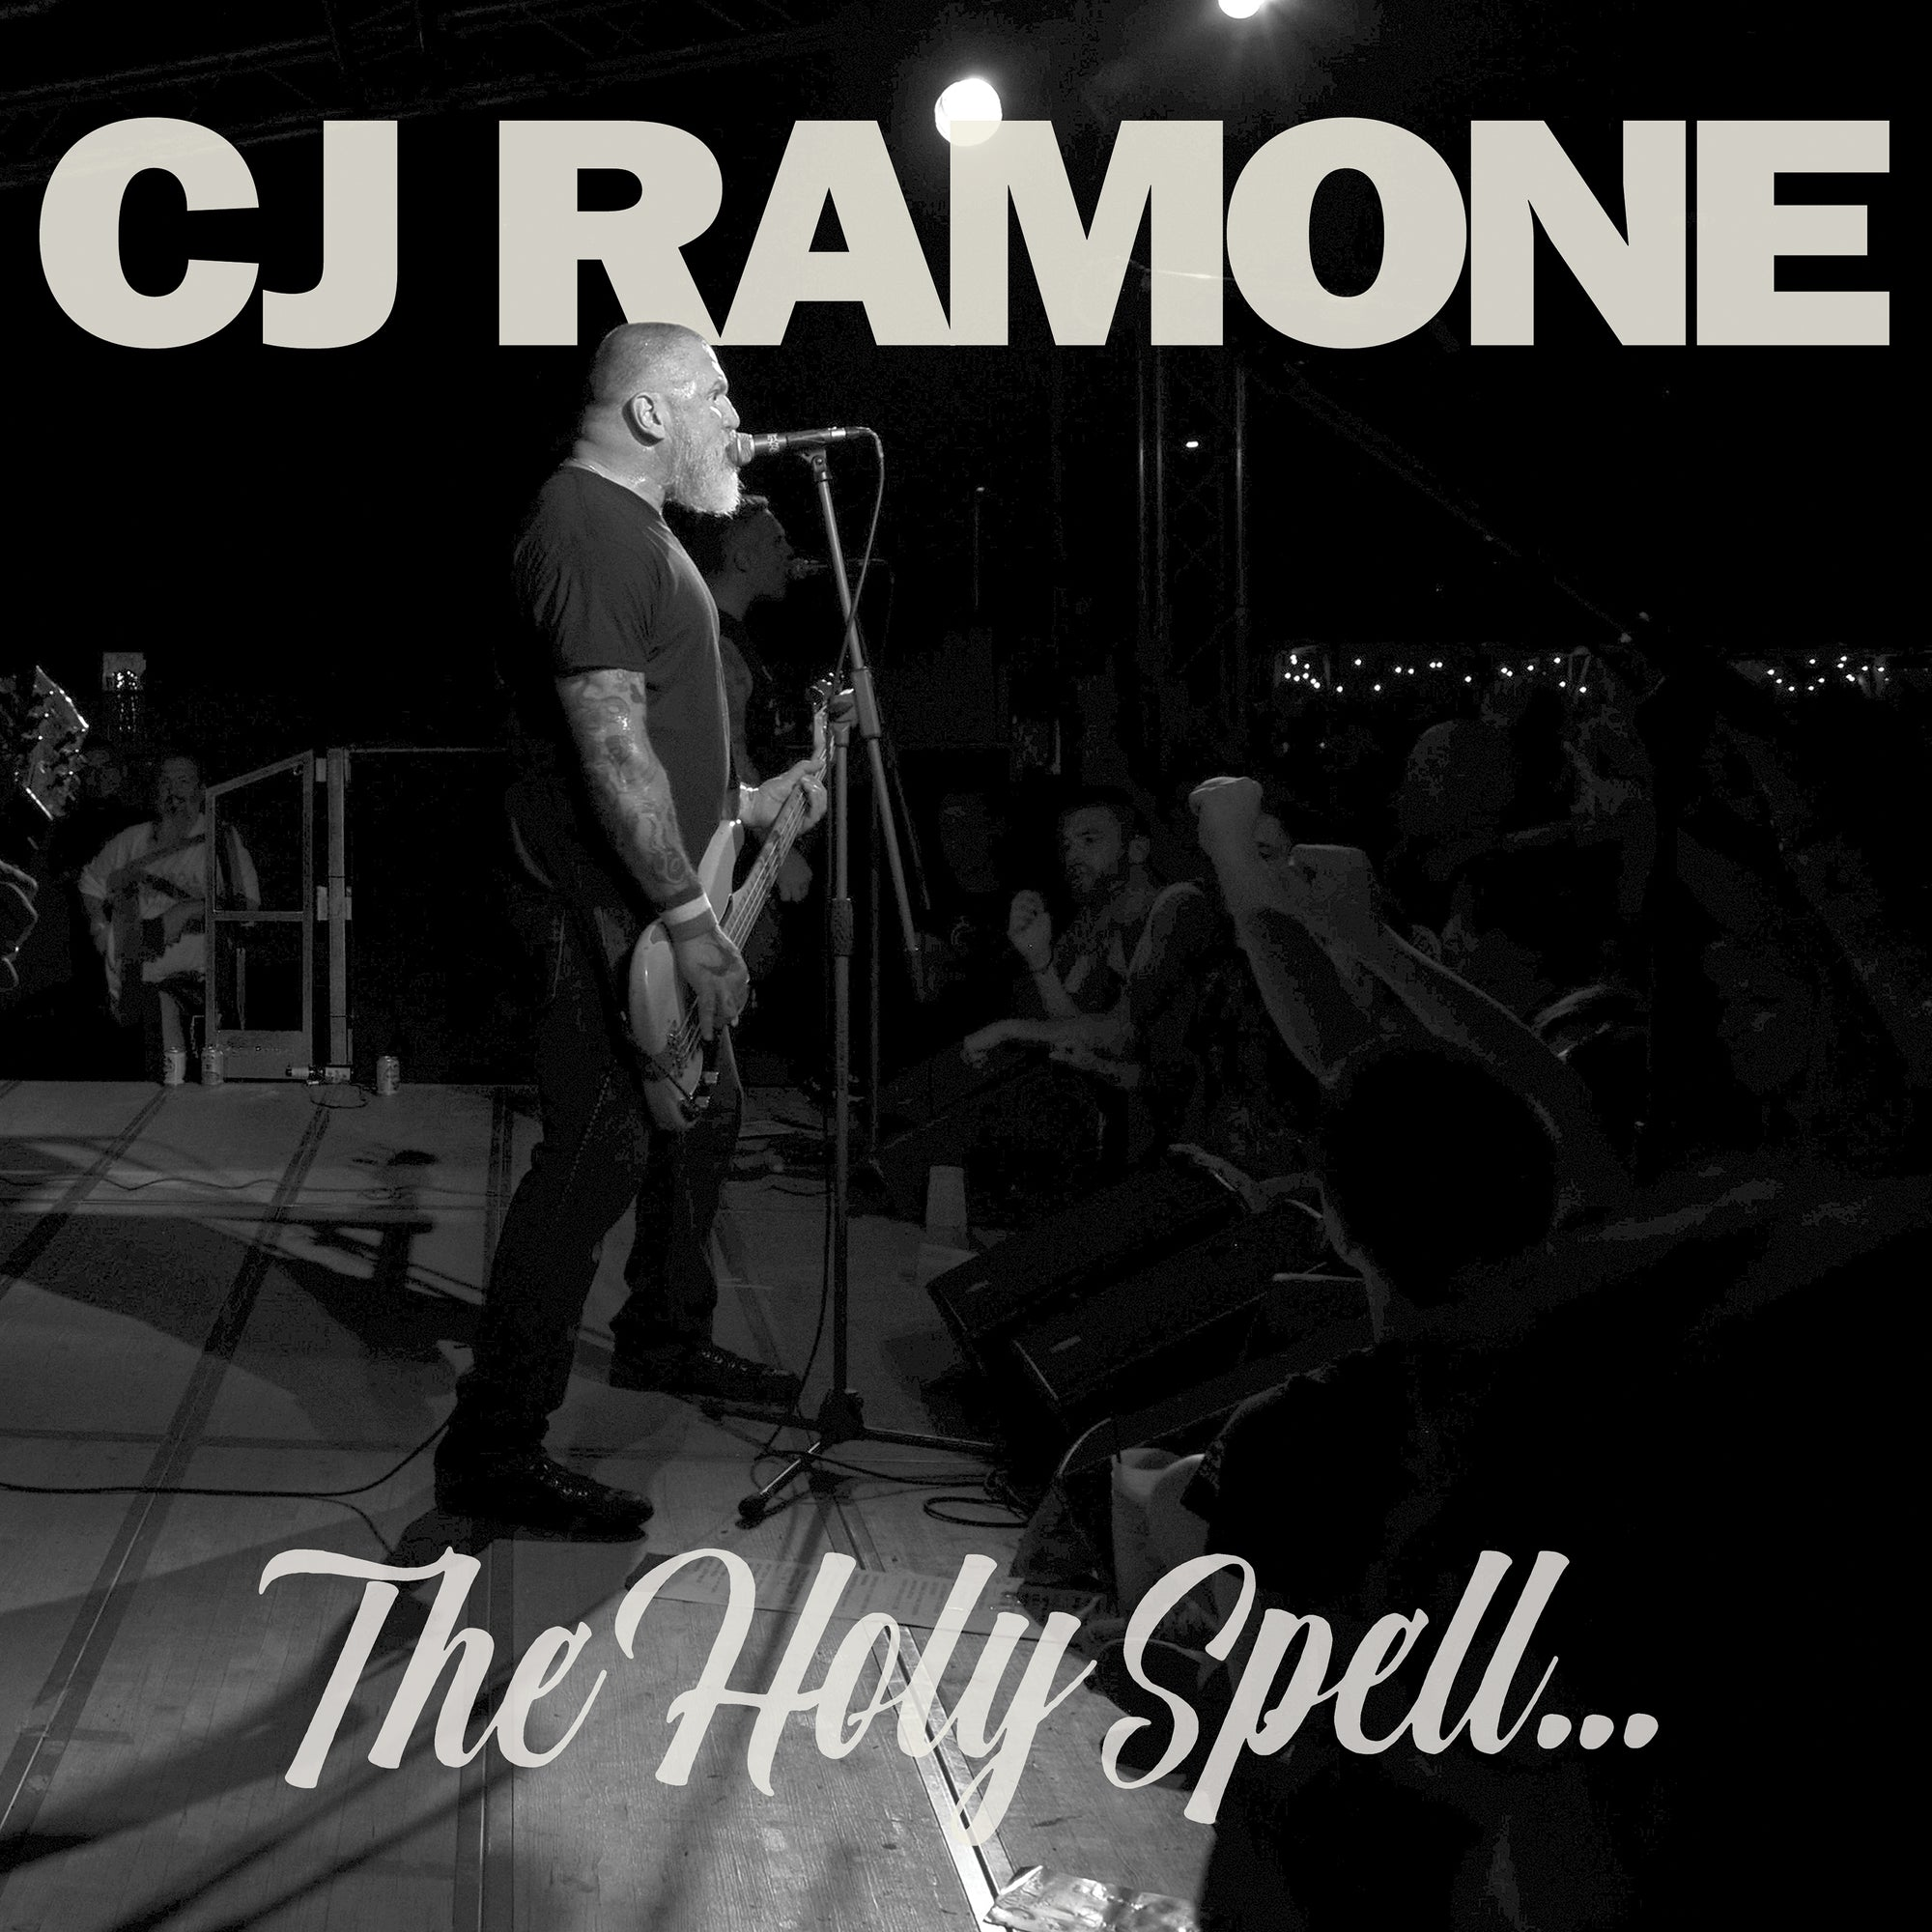 Image result for cj ramone the holy spell